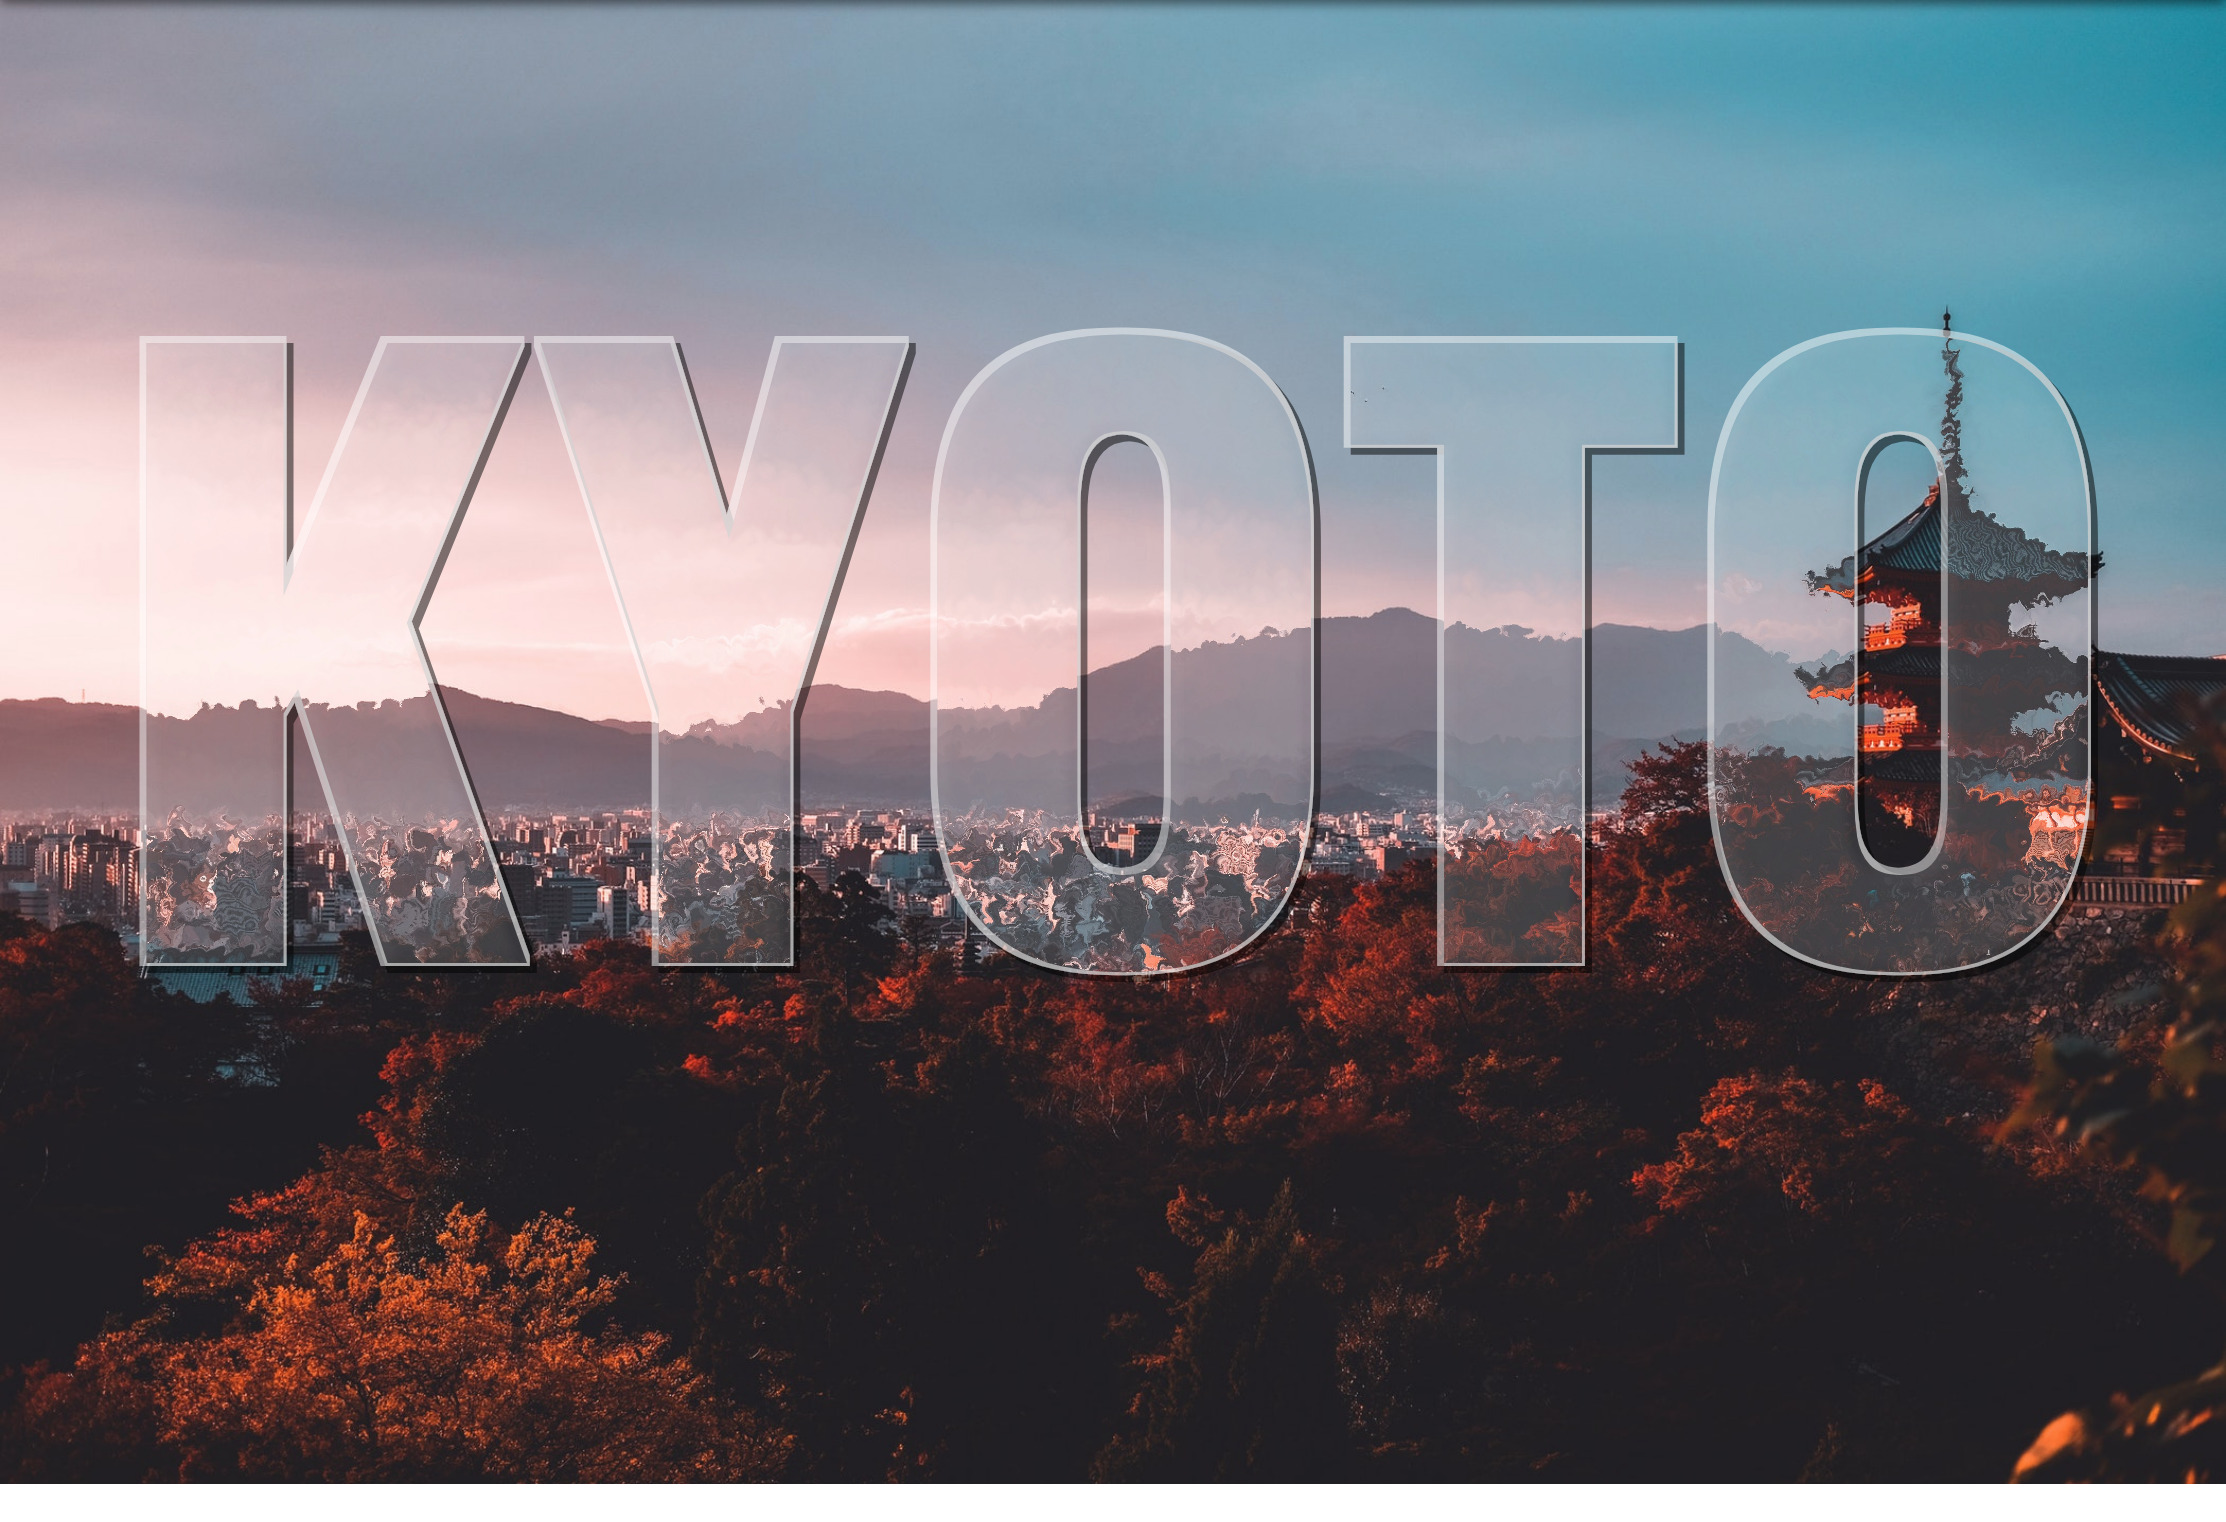 The word Kyoto that is translucent and stacked on top an image of the city.